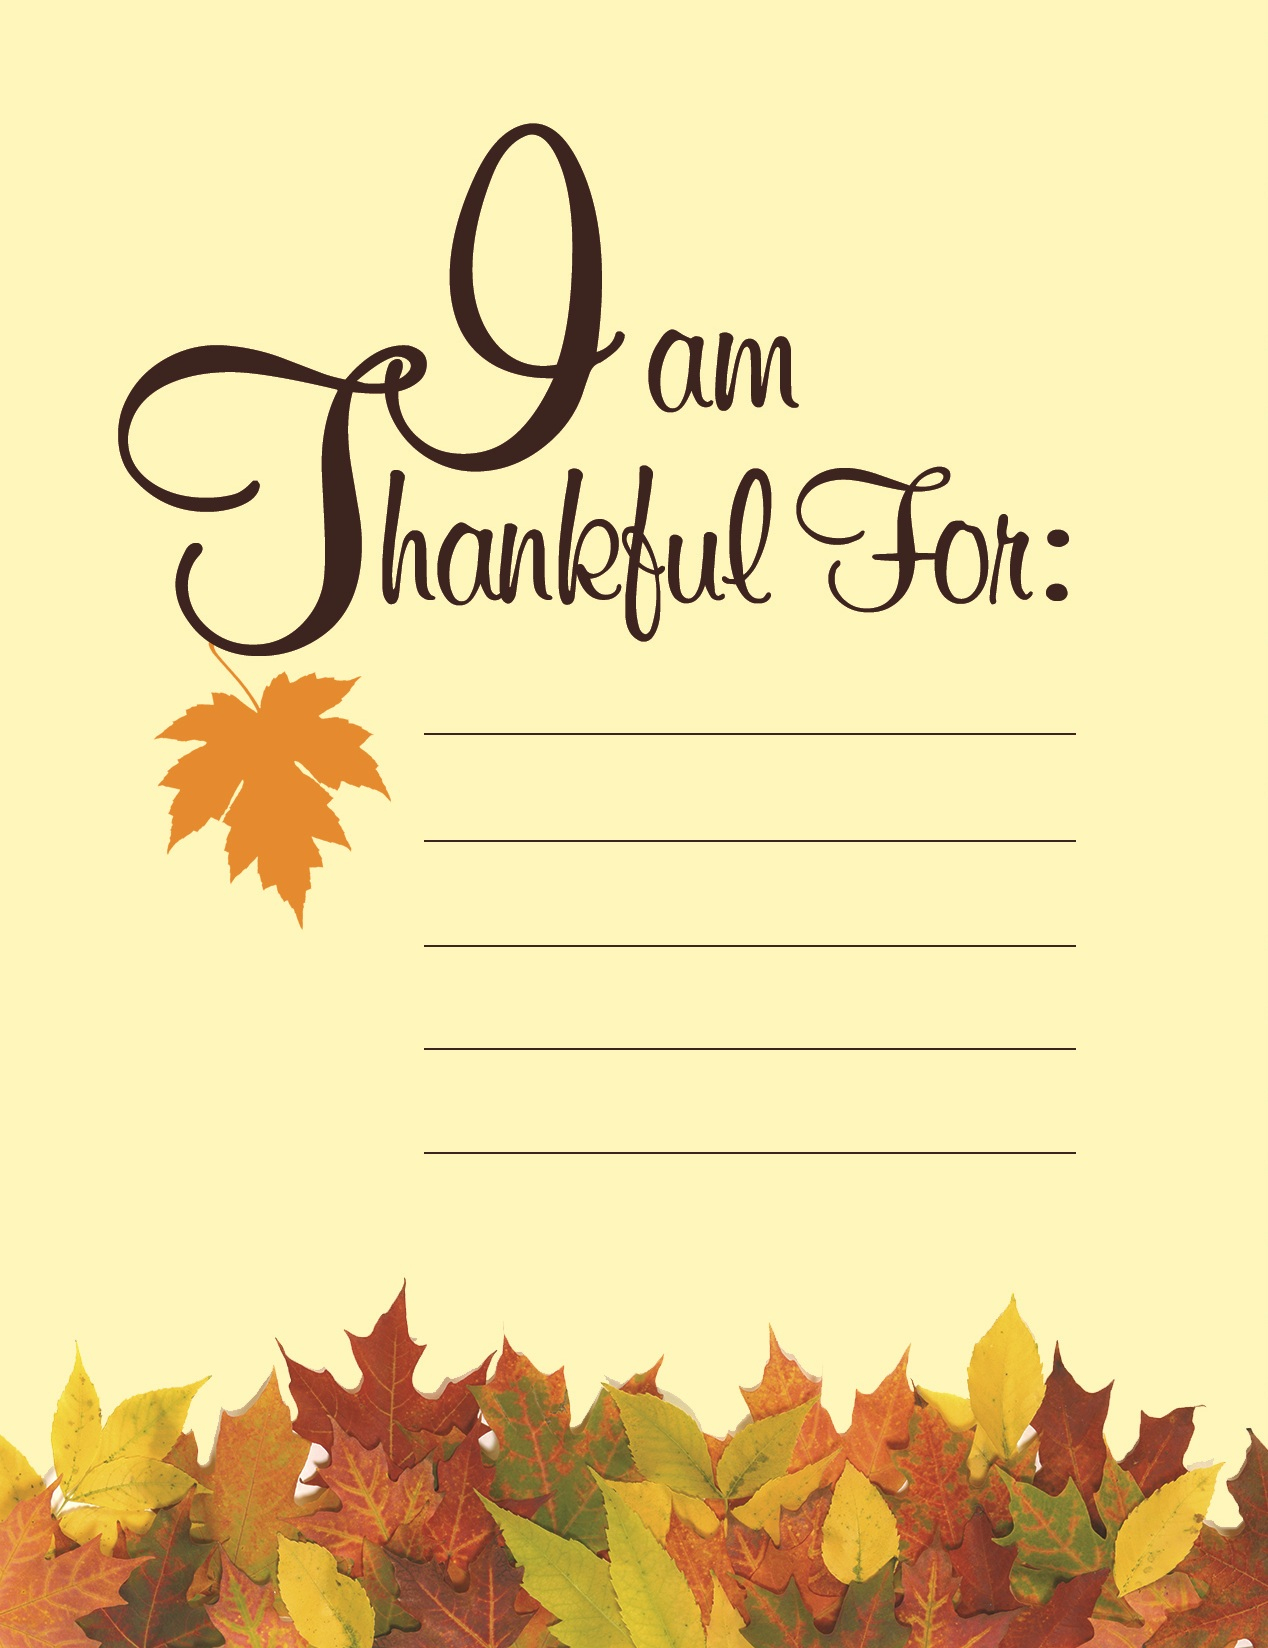 Gratitude This Thanksgiving | American Greetings Blog - Free Printable Greeting Card Sentiments